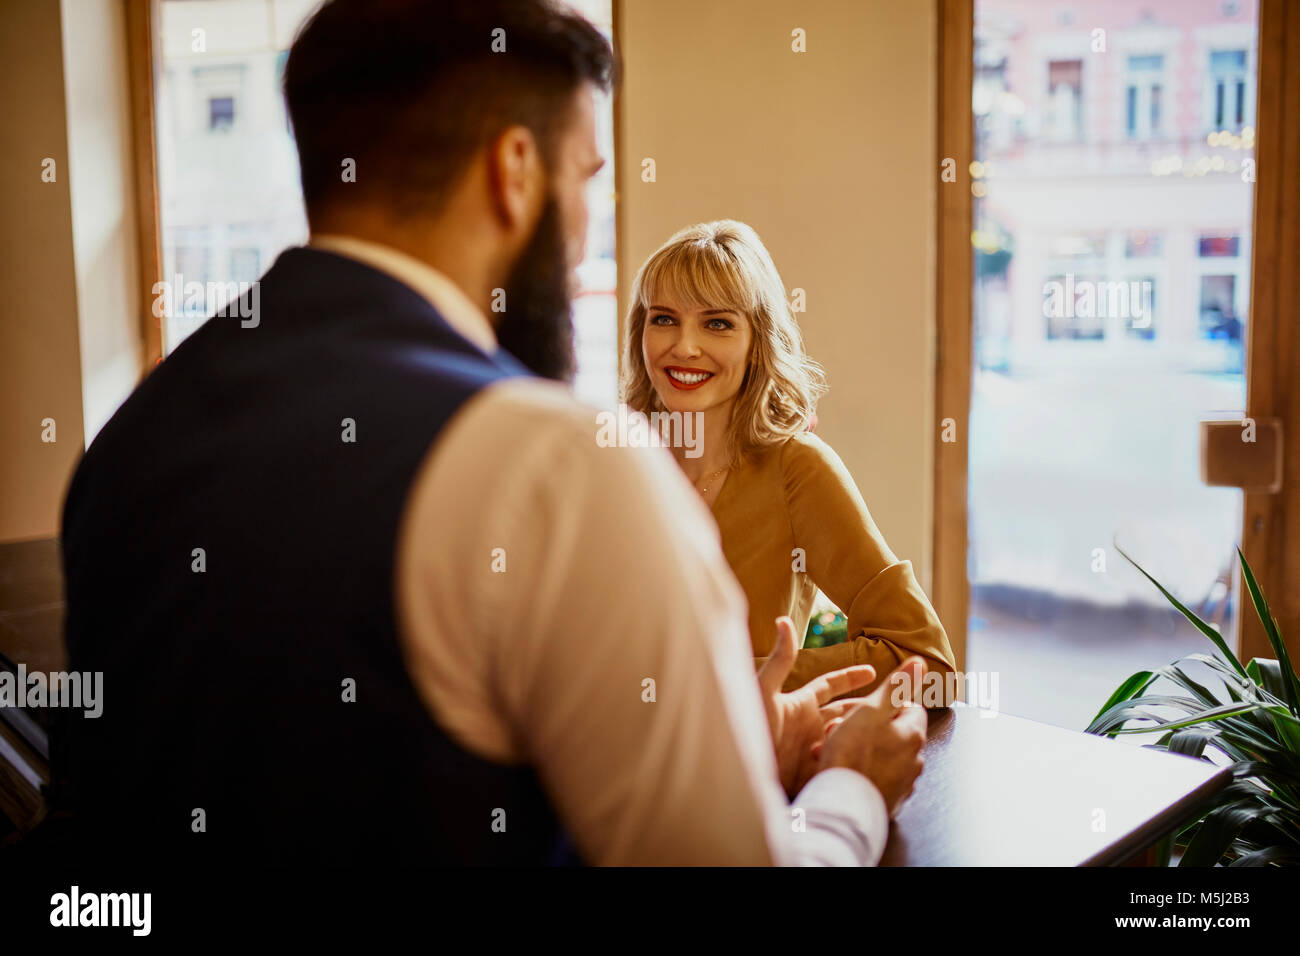 Elegant woman smiling at man in a bar - Stock Image